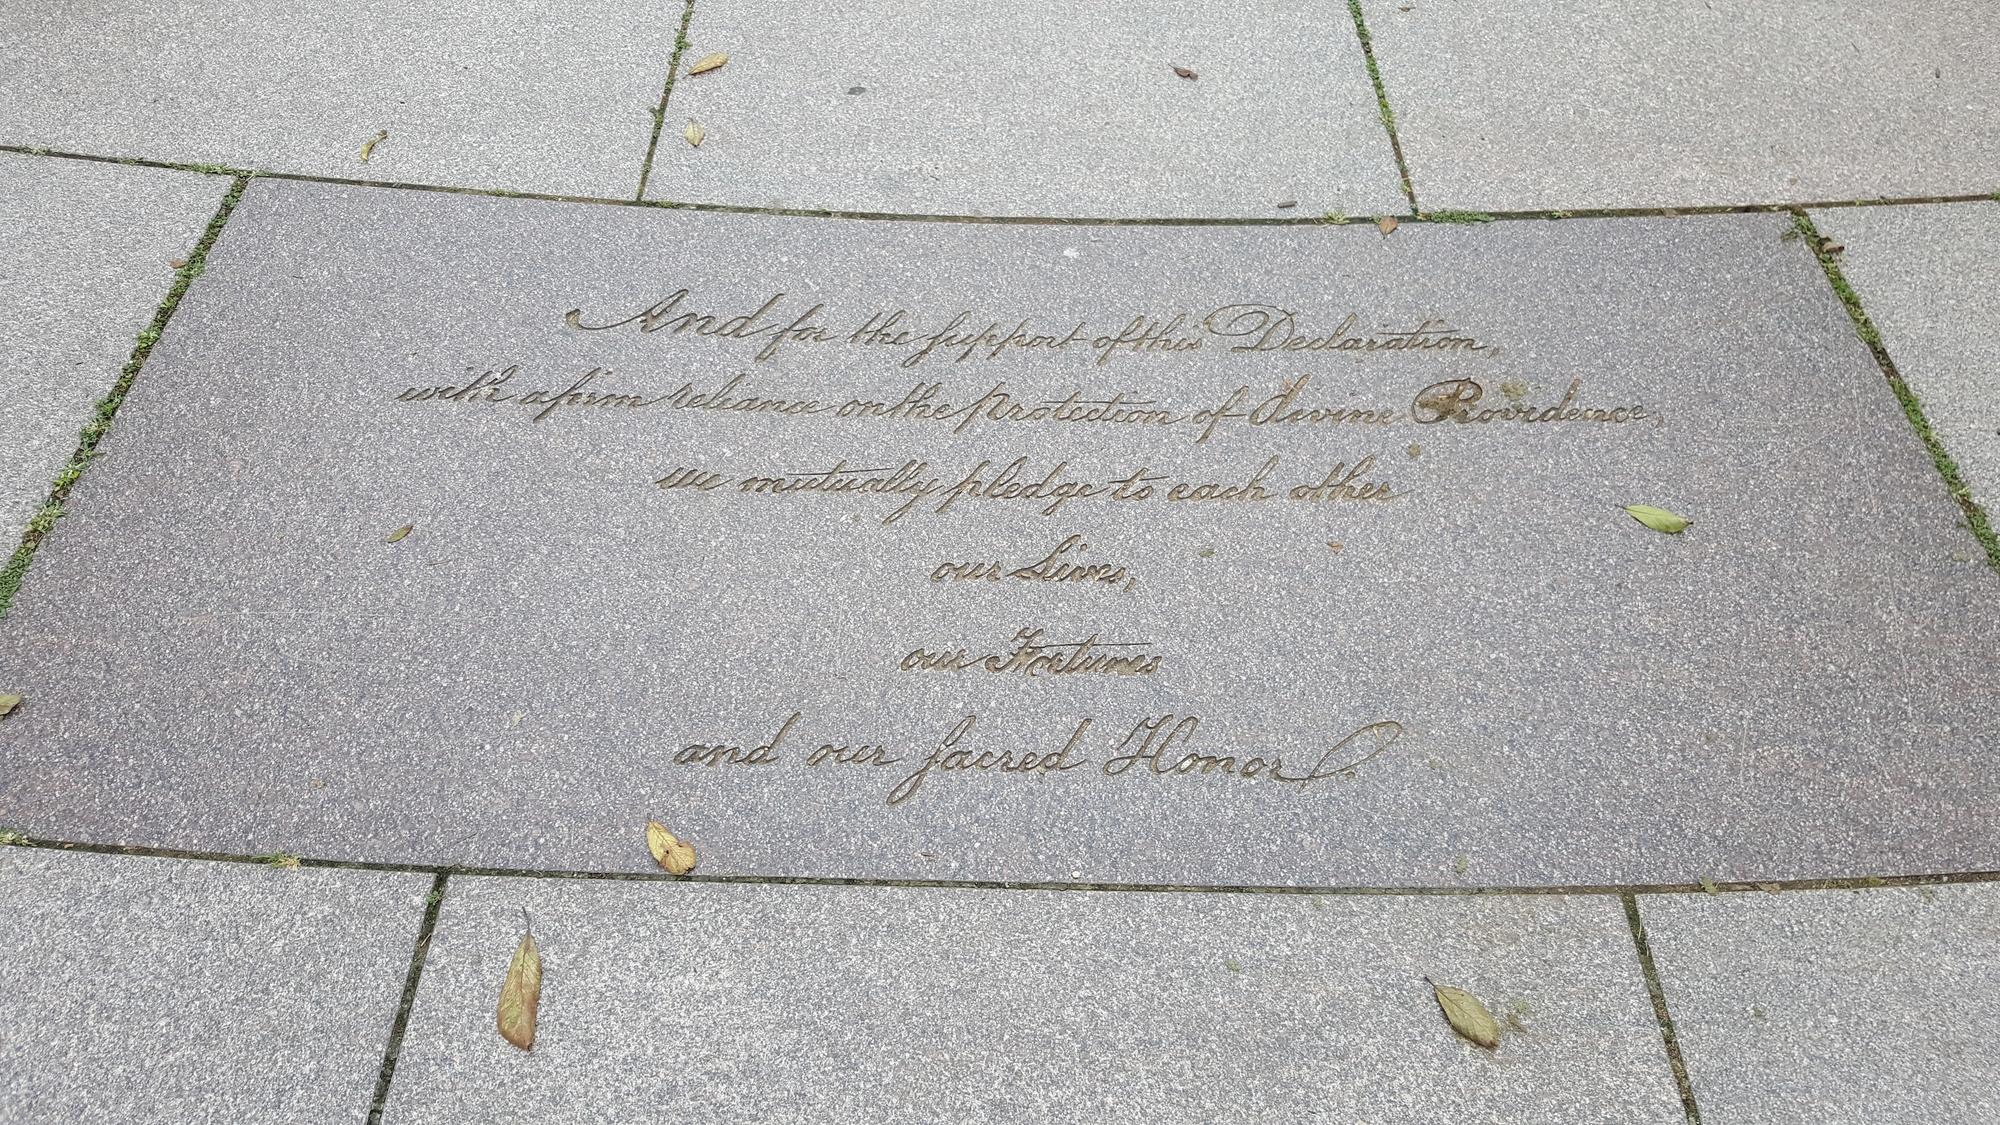 Last Sentence of the Declaration at the Memorial to the 56 Signers